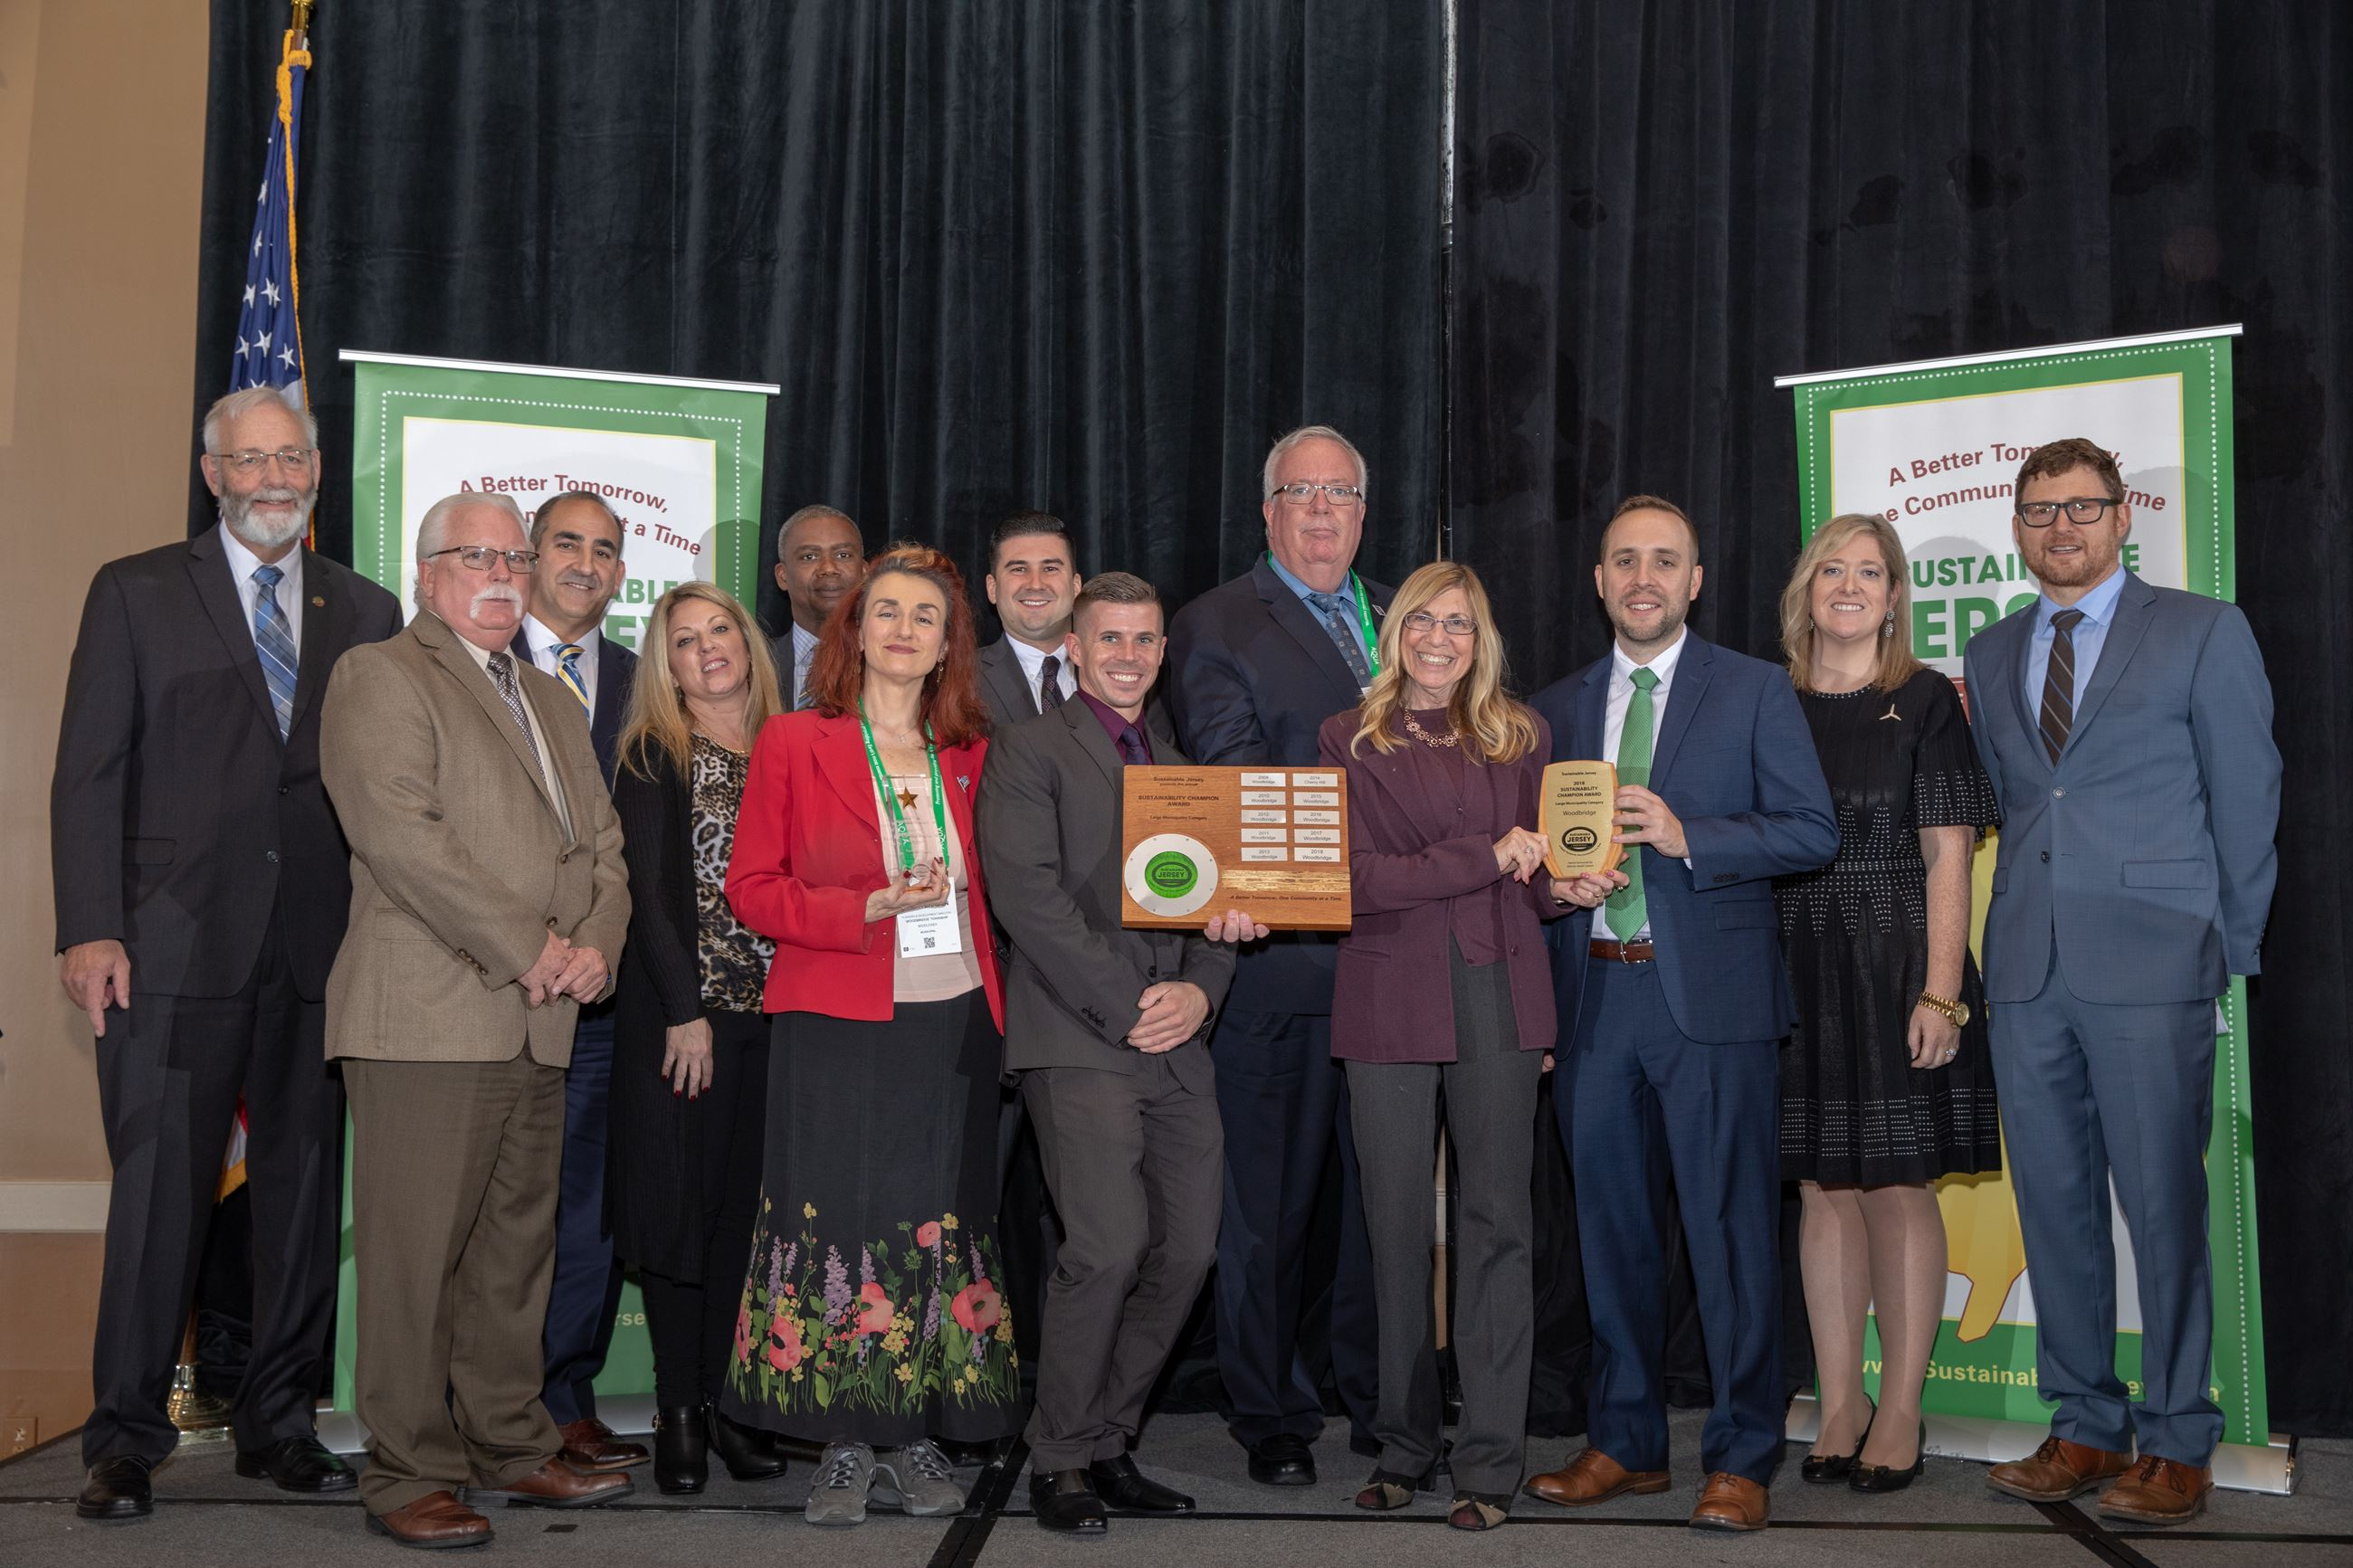 Sustainable Jersey_NJLM Champion Award_Group - Best - 11-13-18